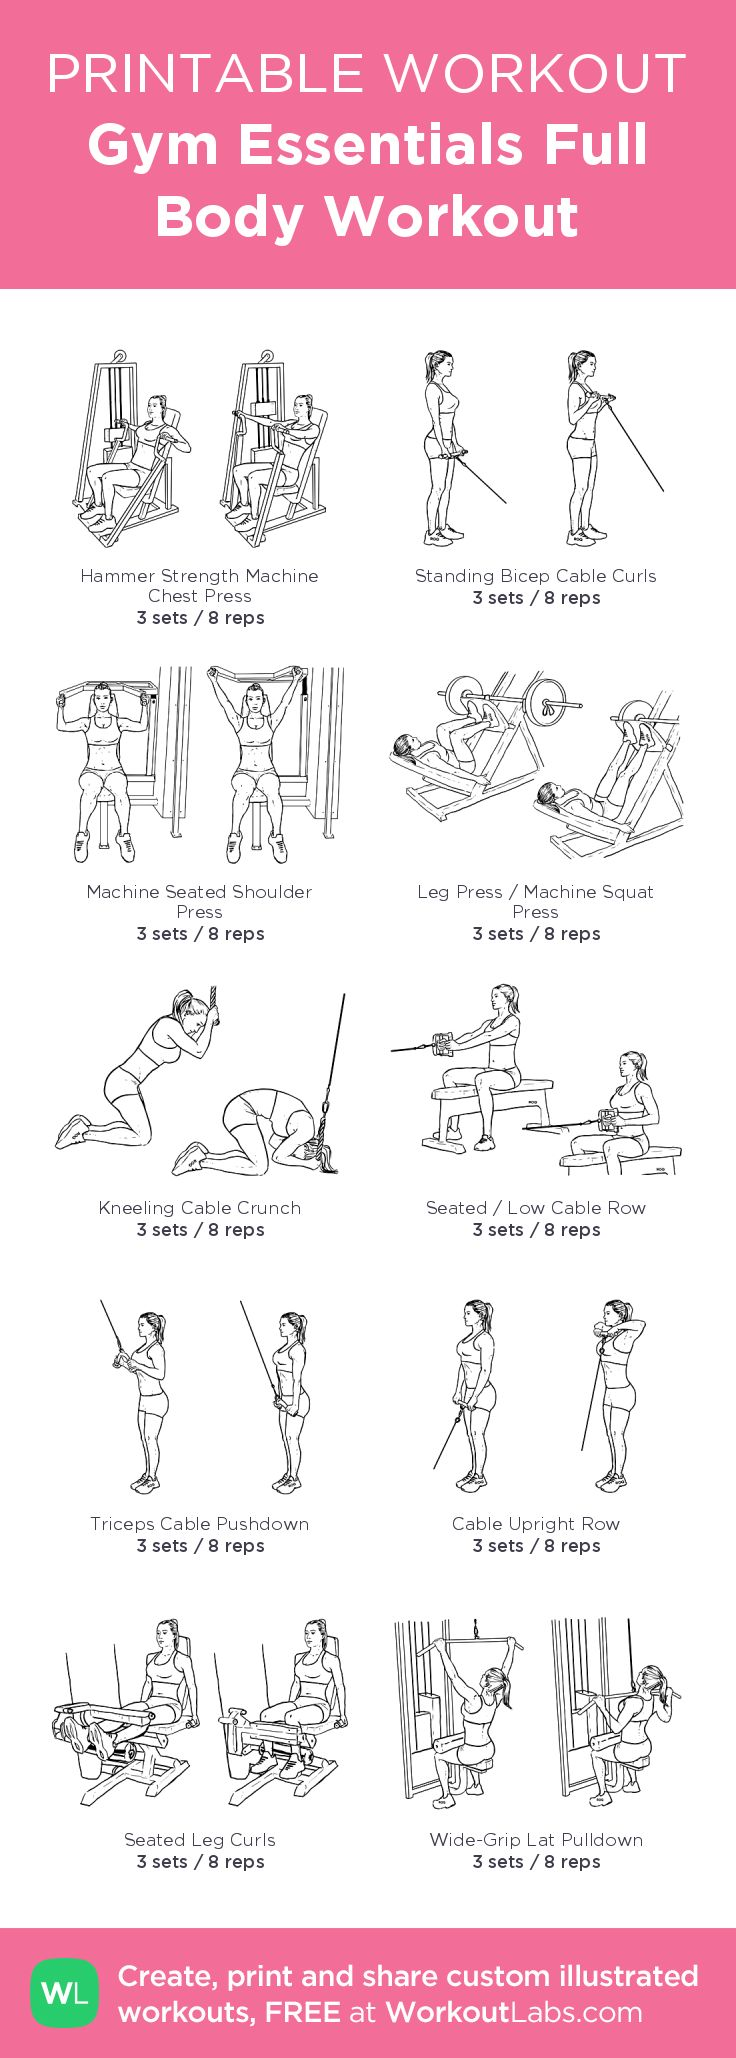 Gym Essentials Full Body Workout My Visual Created At WorkoutLabs O Click